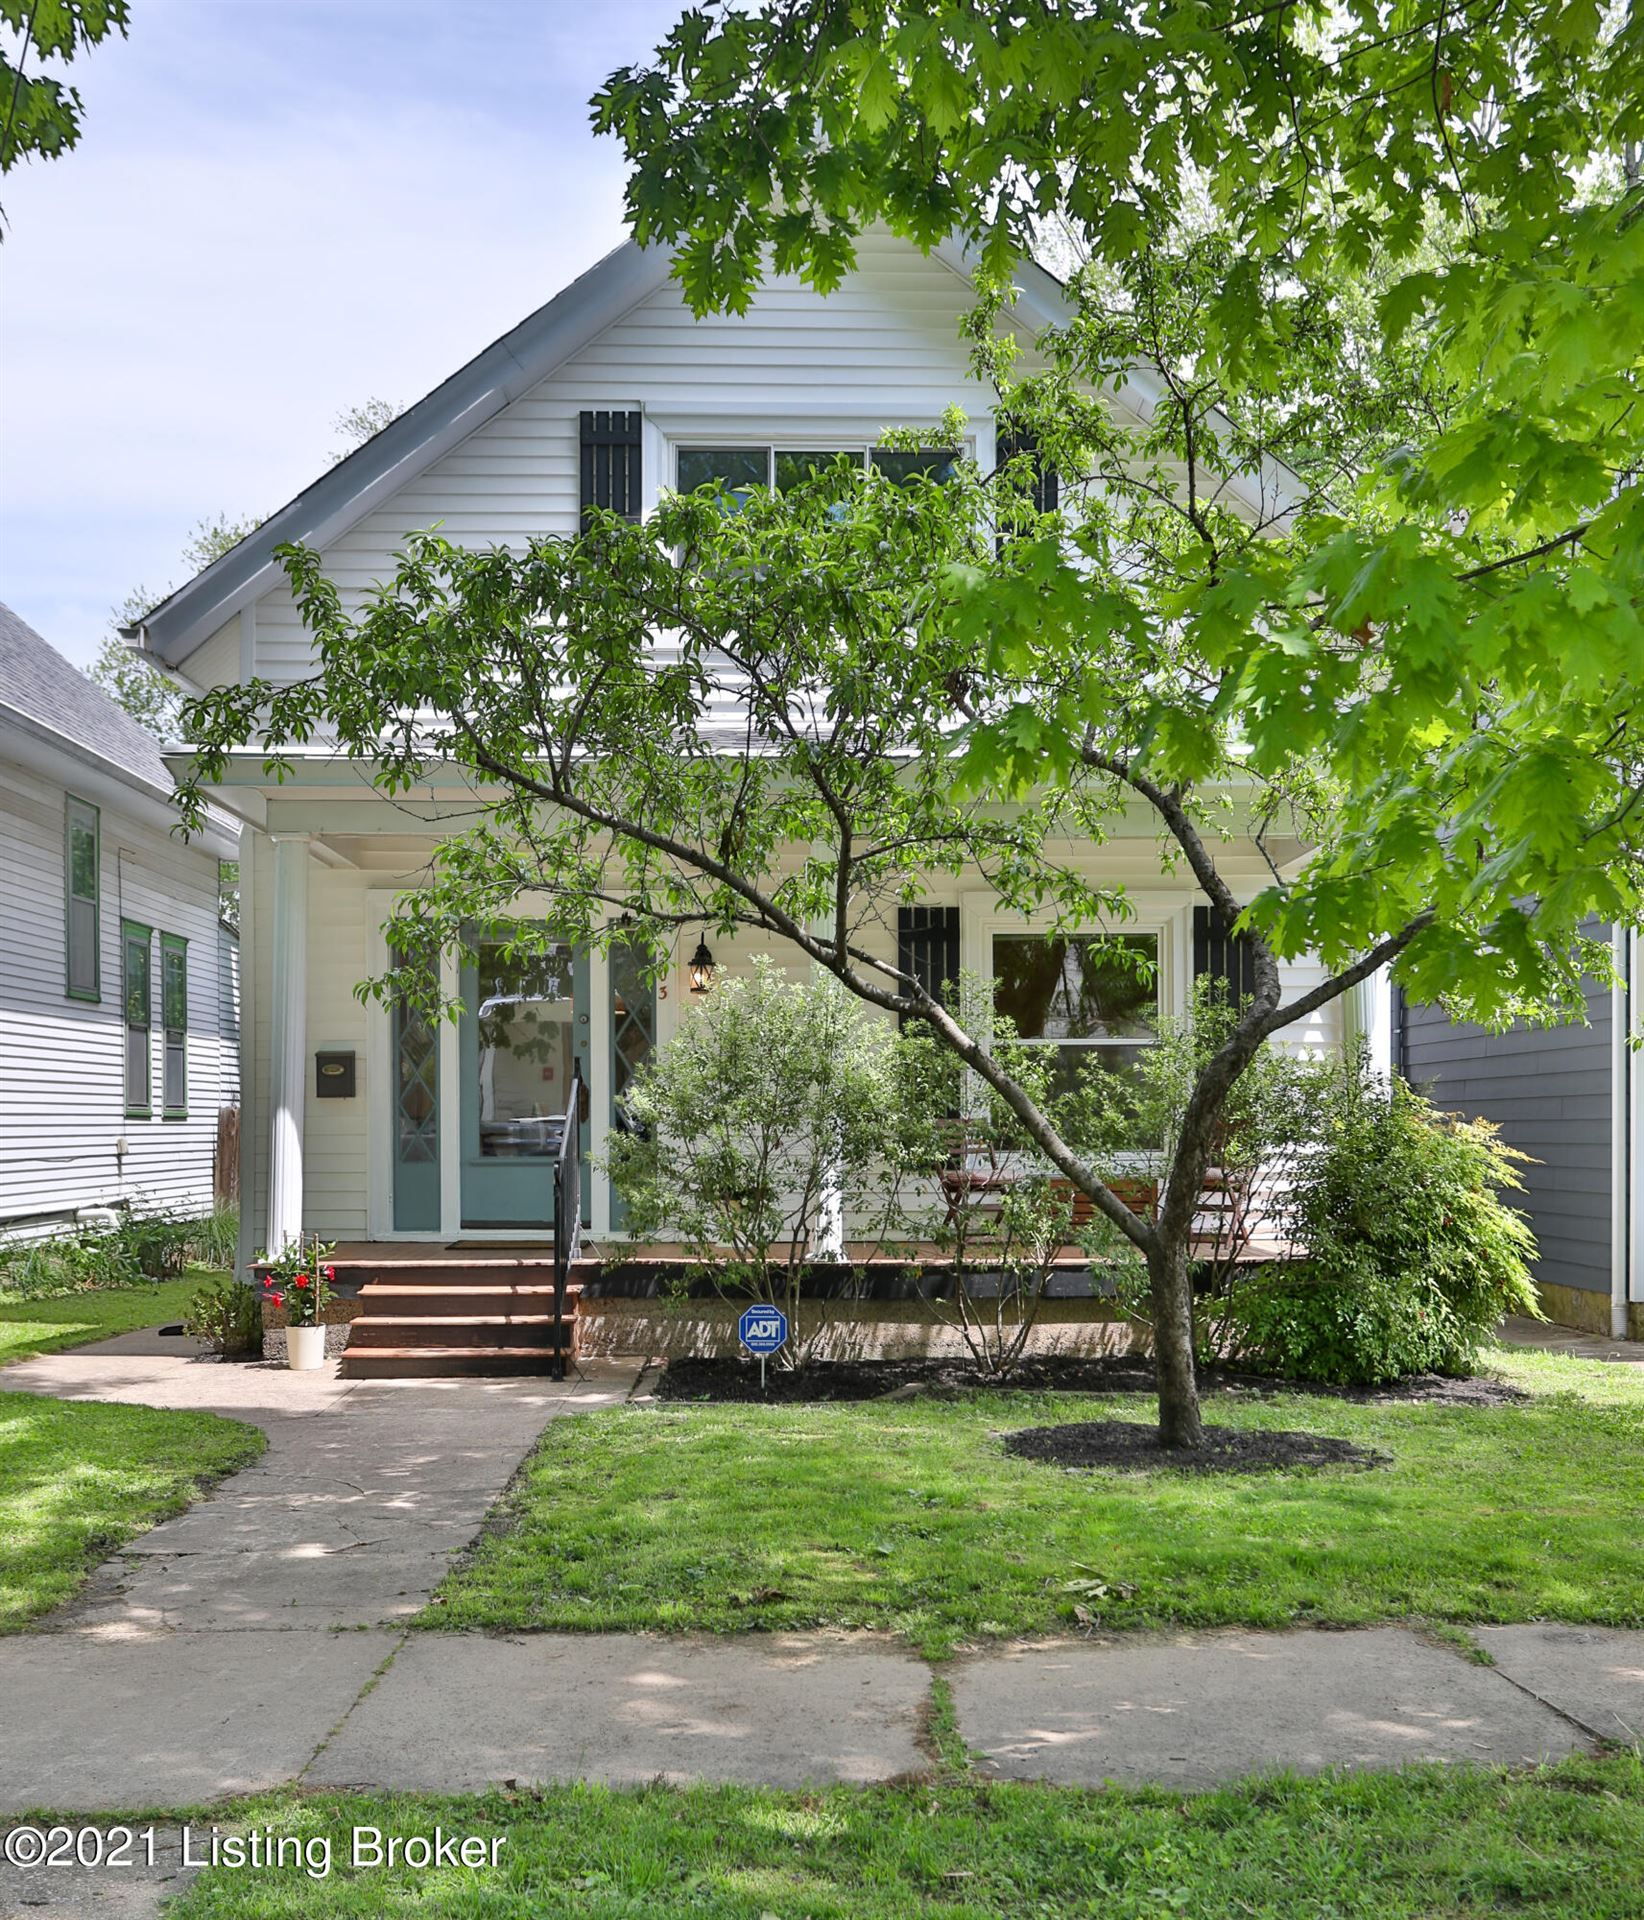 Photo for 203 S Hite Ave, Louisville, KY 40206 (MLS # 1585104)